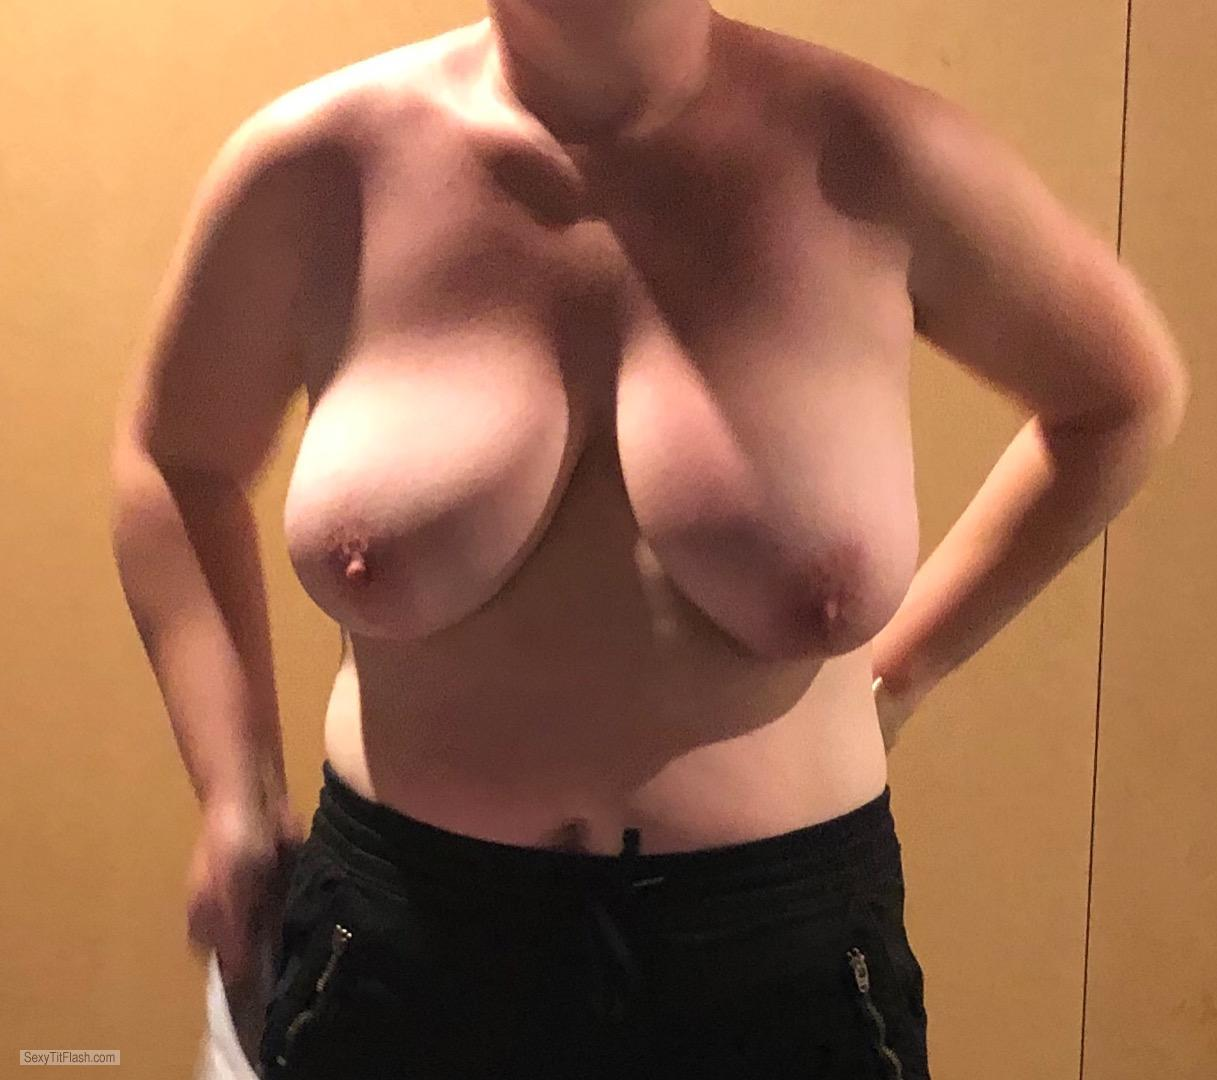 Tit Flash: My Very Big Tits - Deadpool574 from Australia